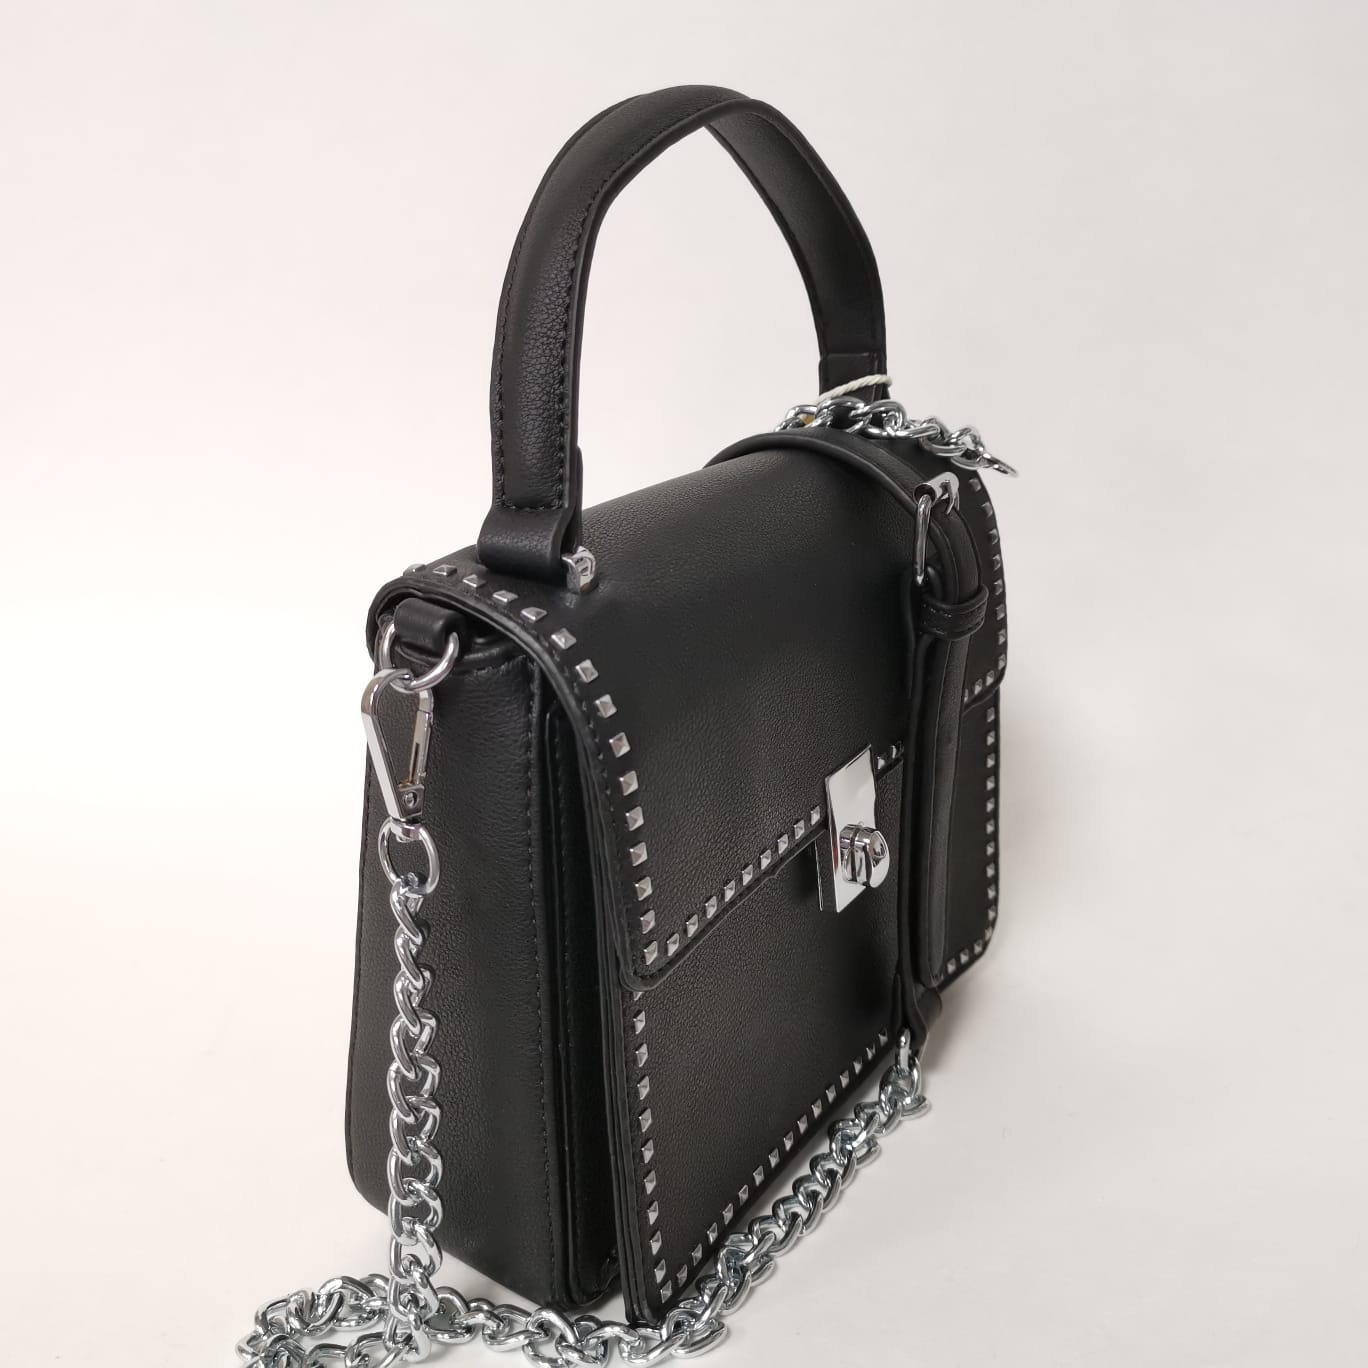 Eleanor Bag Black